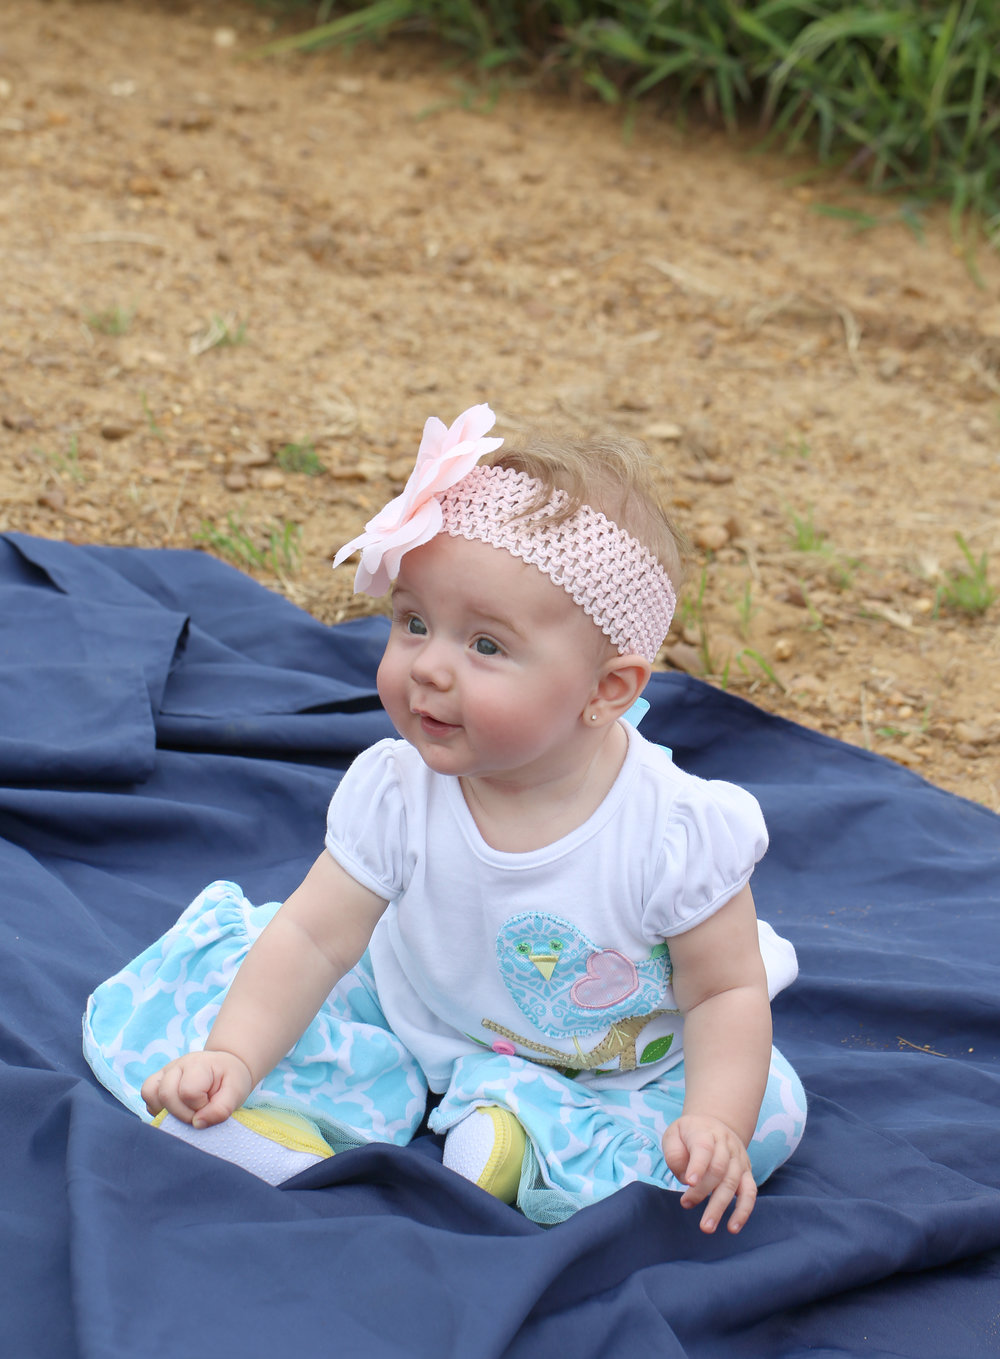 caidy_5month_009.jpg